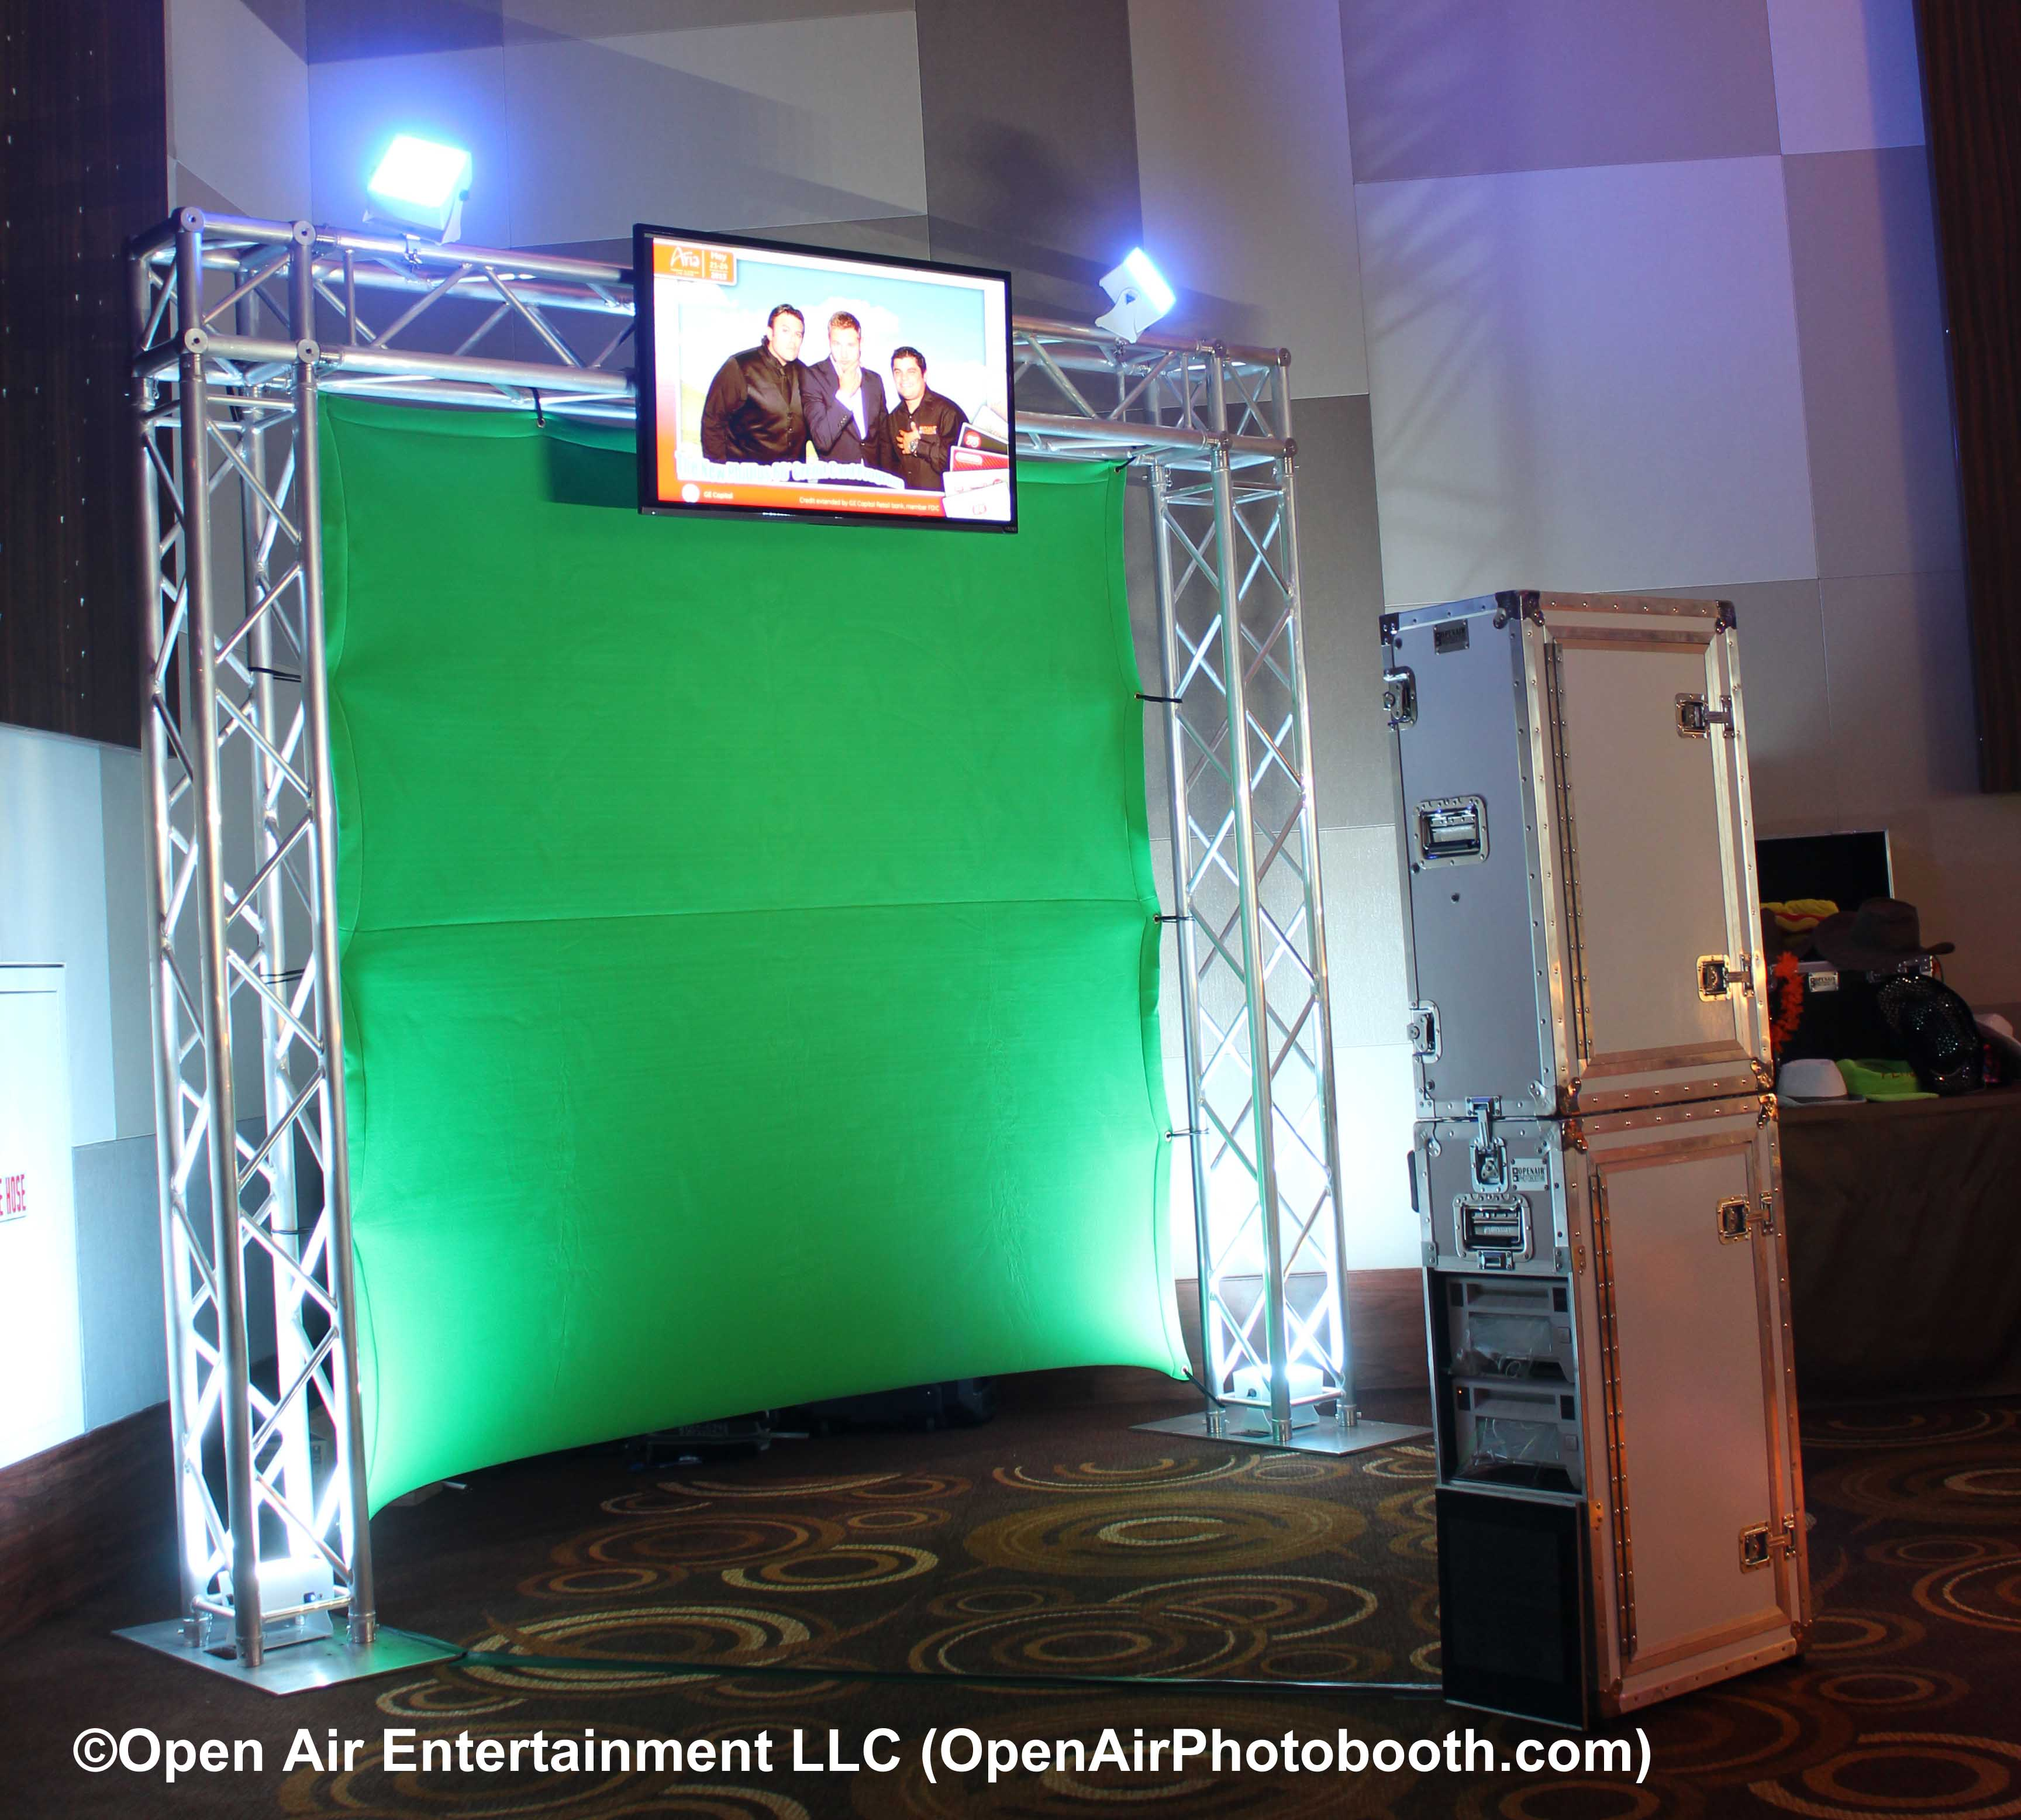 Open Air Photobooth - Green Screen